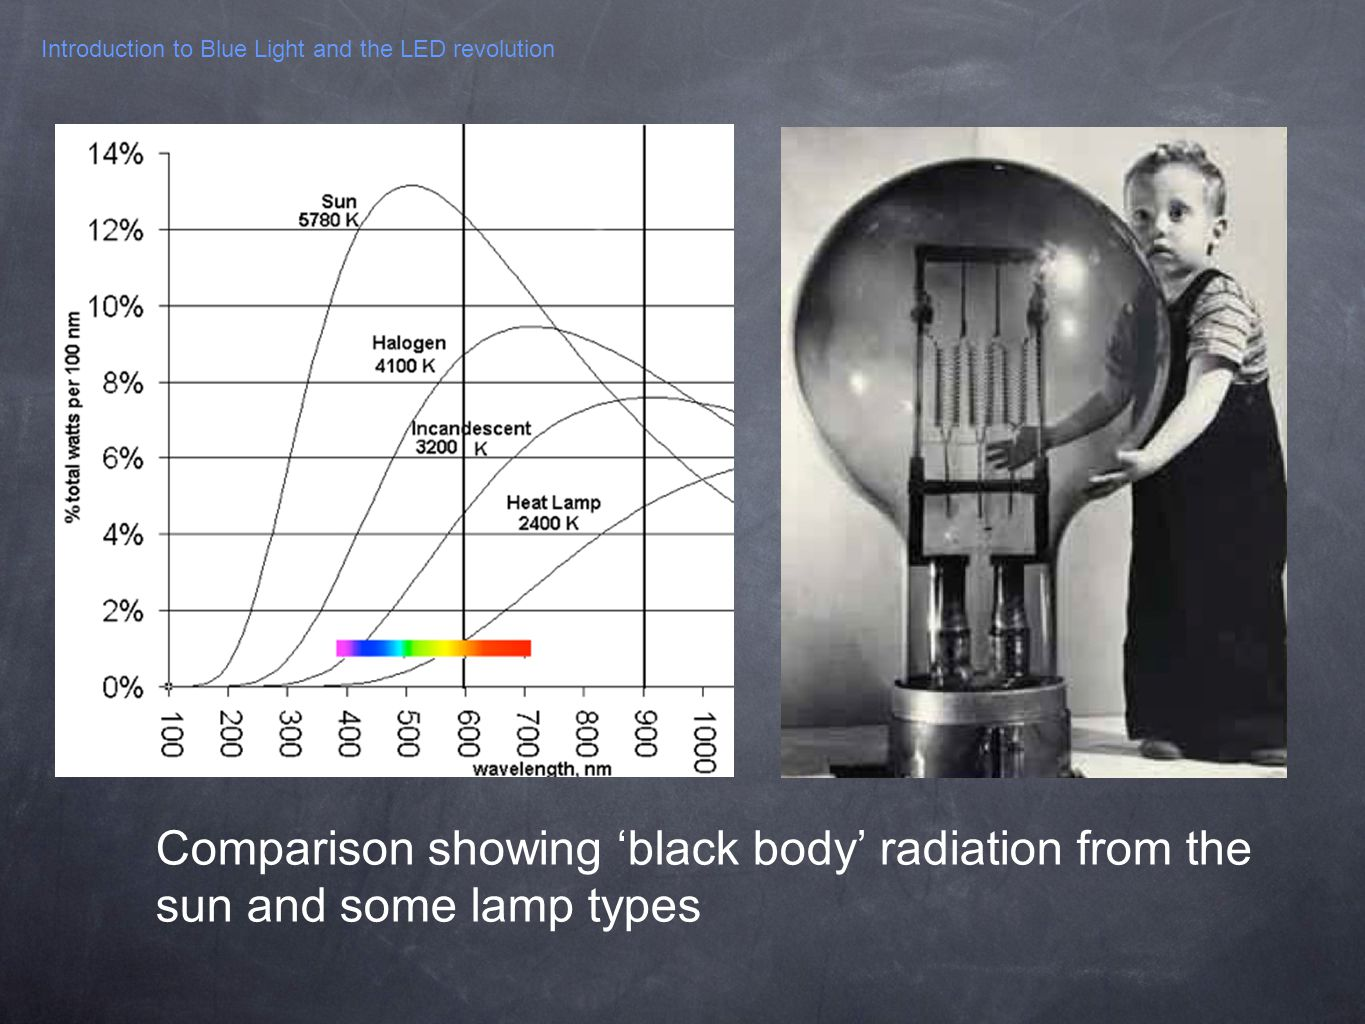 Introduction to Blue Light and the LED revolution Comparison showing black body radiation from the sun and some lamp types